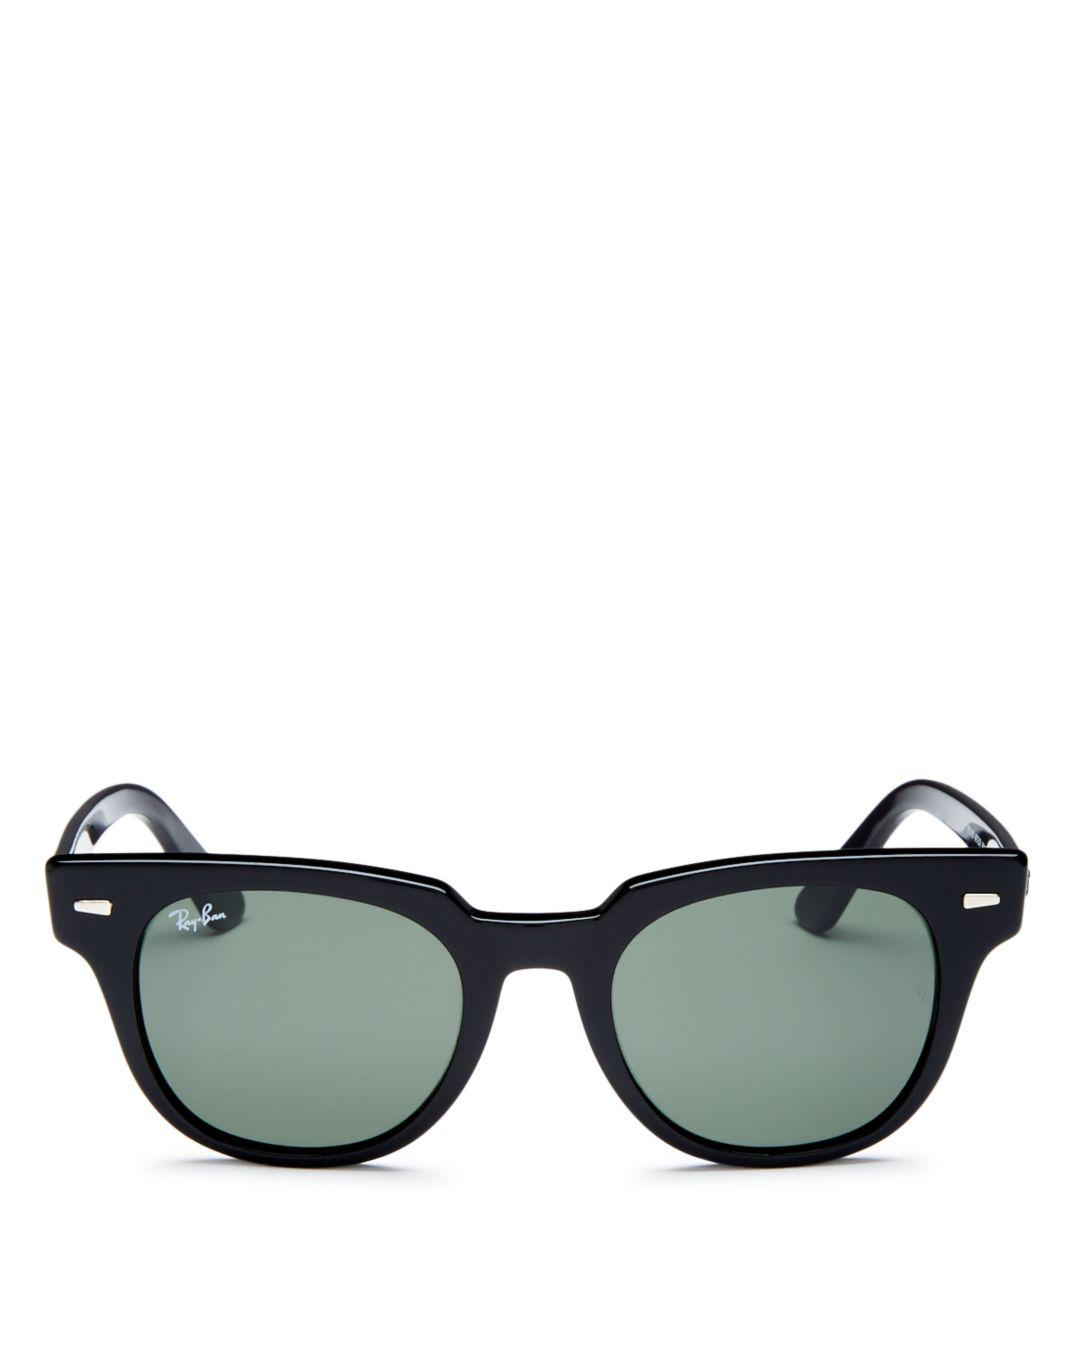 75e2db4537 Lyst - Ray-Ban 50mm in Black for Men